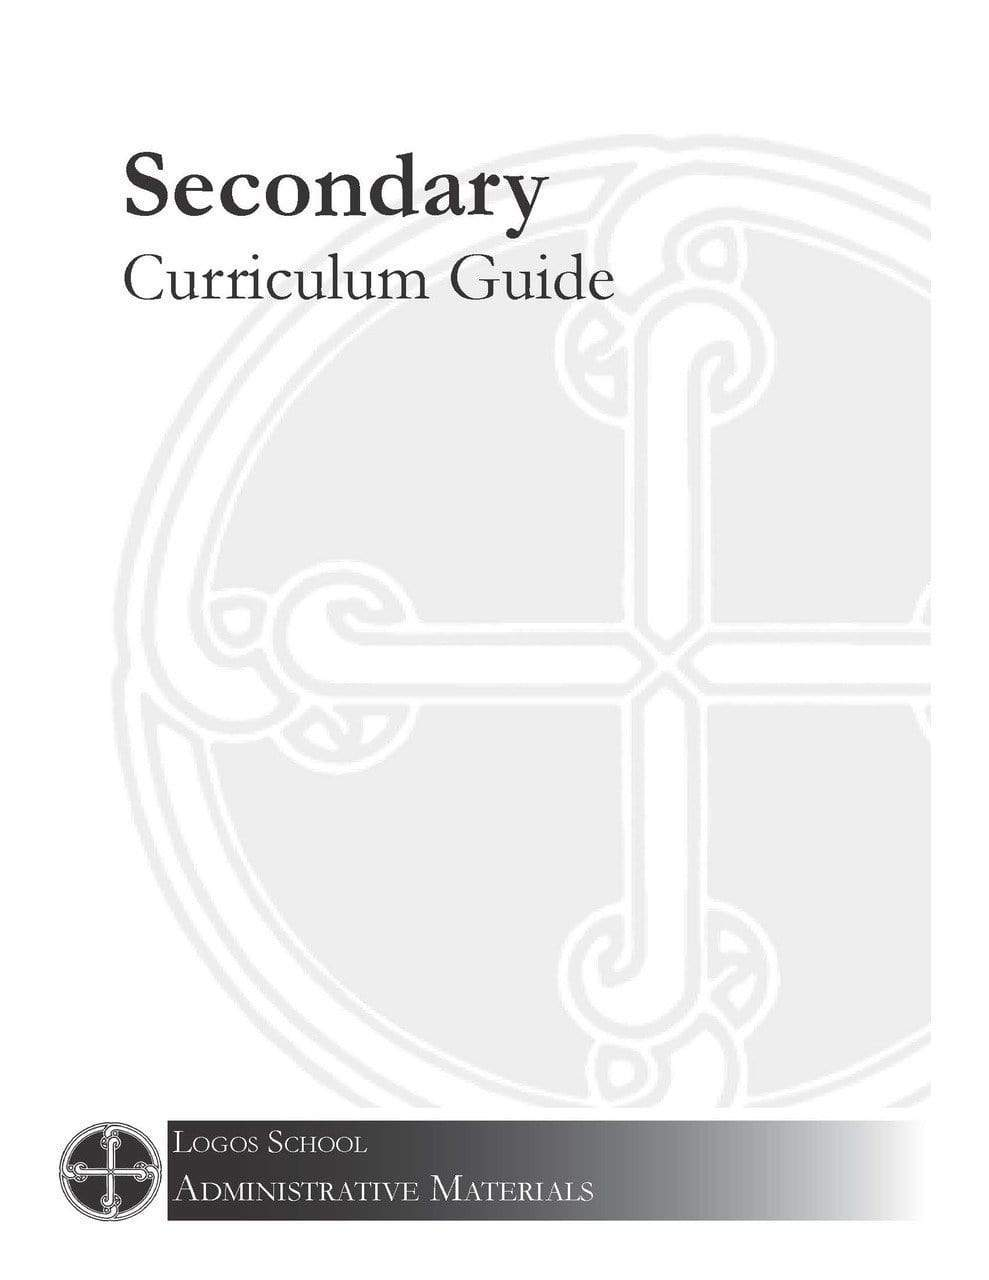 Complete Secondary Curriculum Guide (Download)